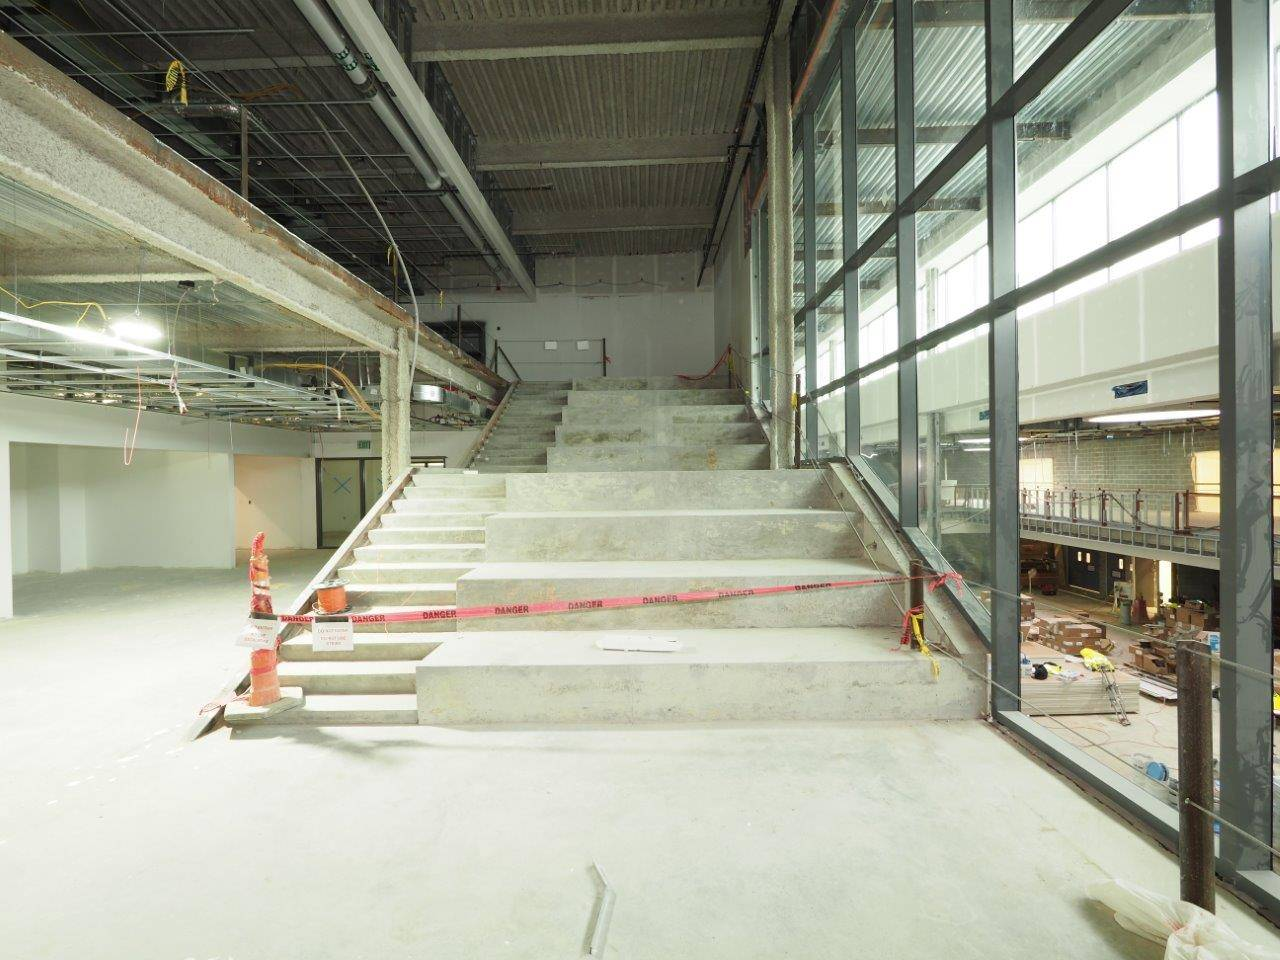 Learning stairs in the new Upper Arlington High School